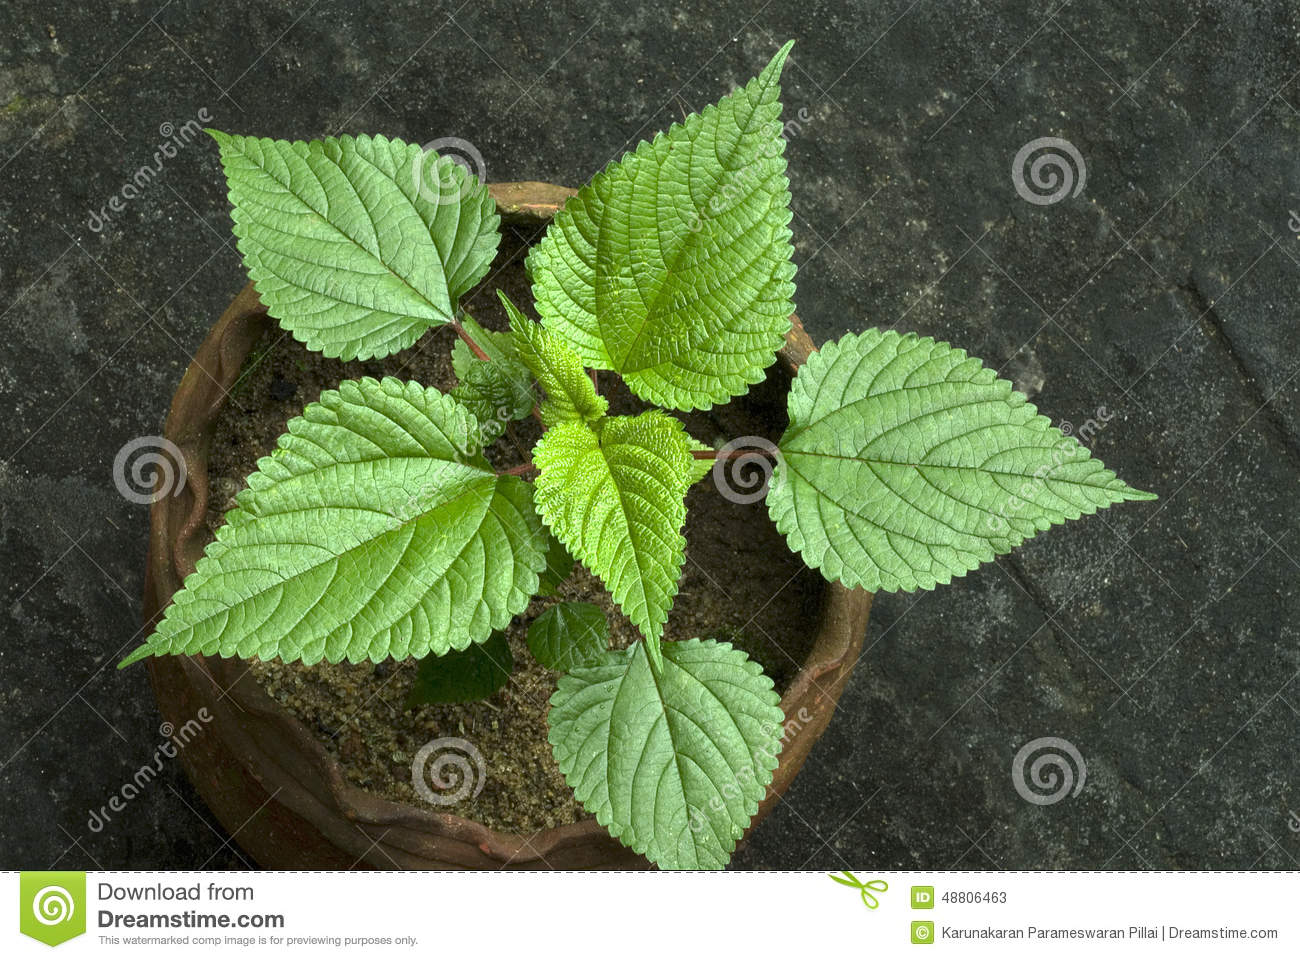 Stinging Nettle In Potted Plant.